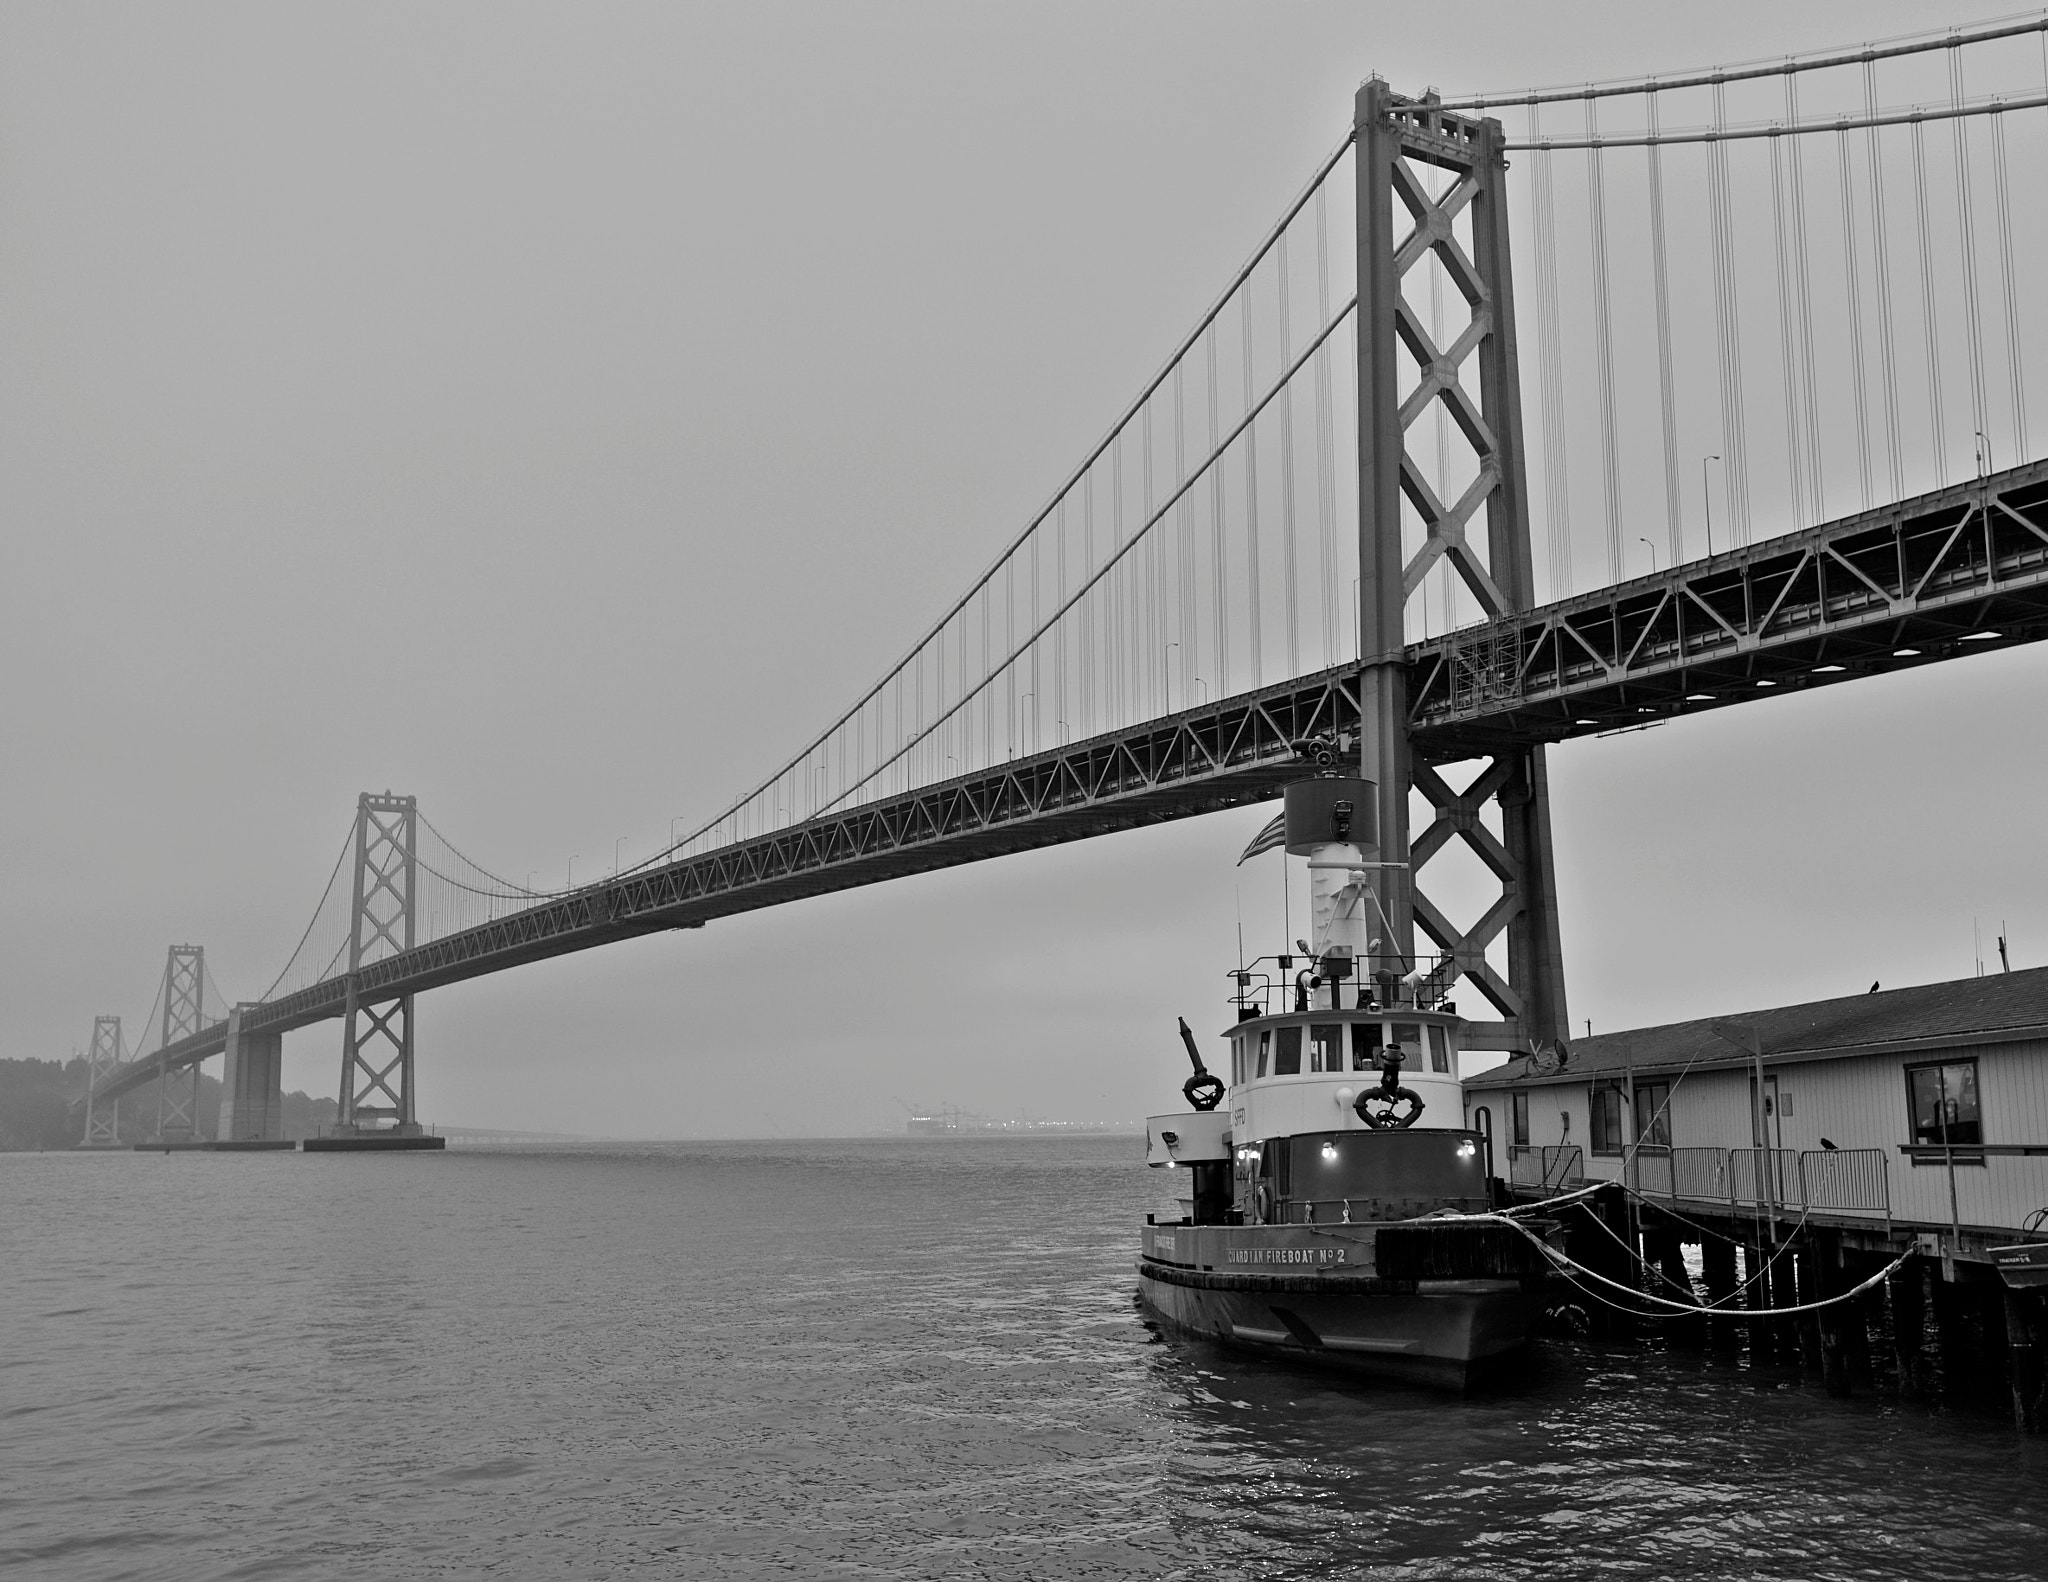 Photograph Fireboat - revised by Stephen TheGecko on 500px